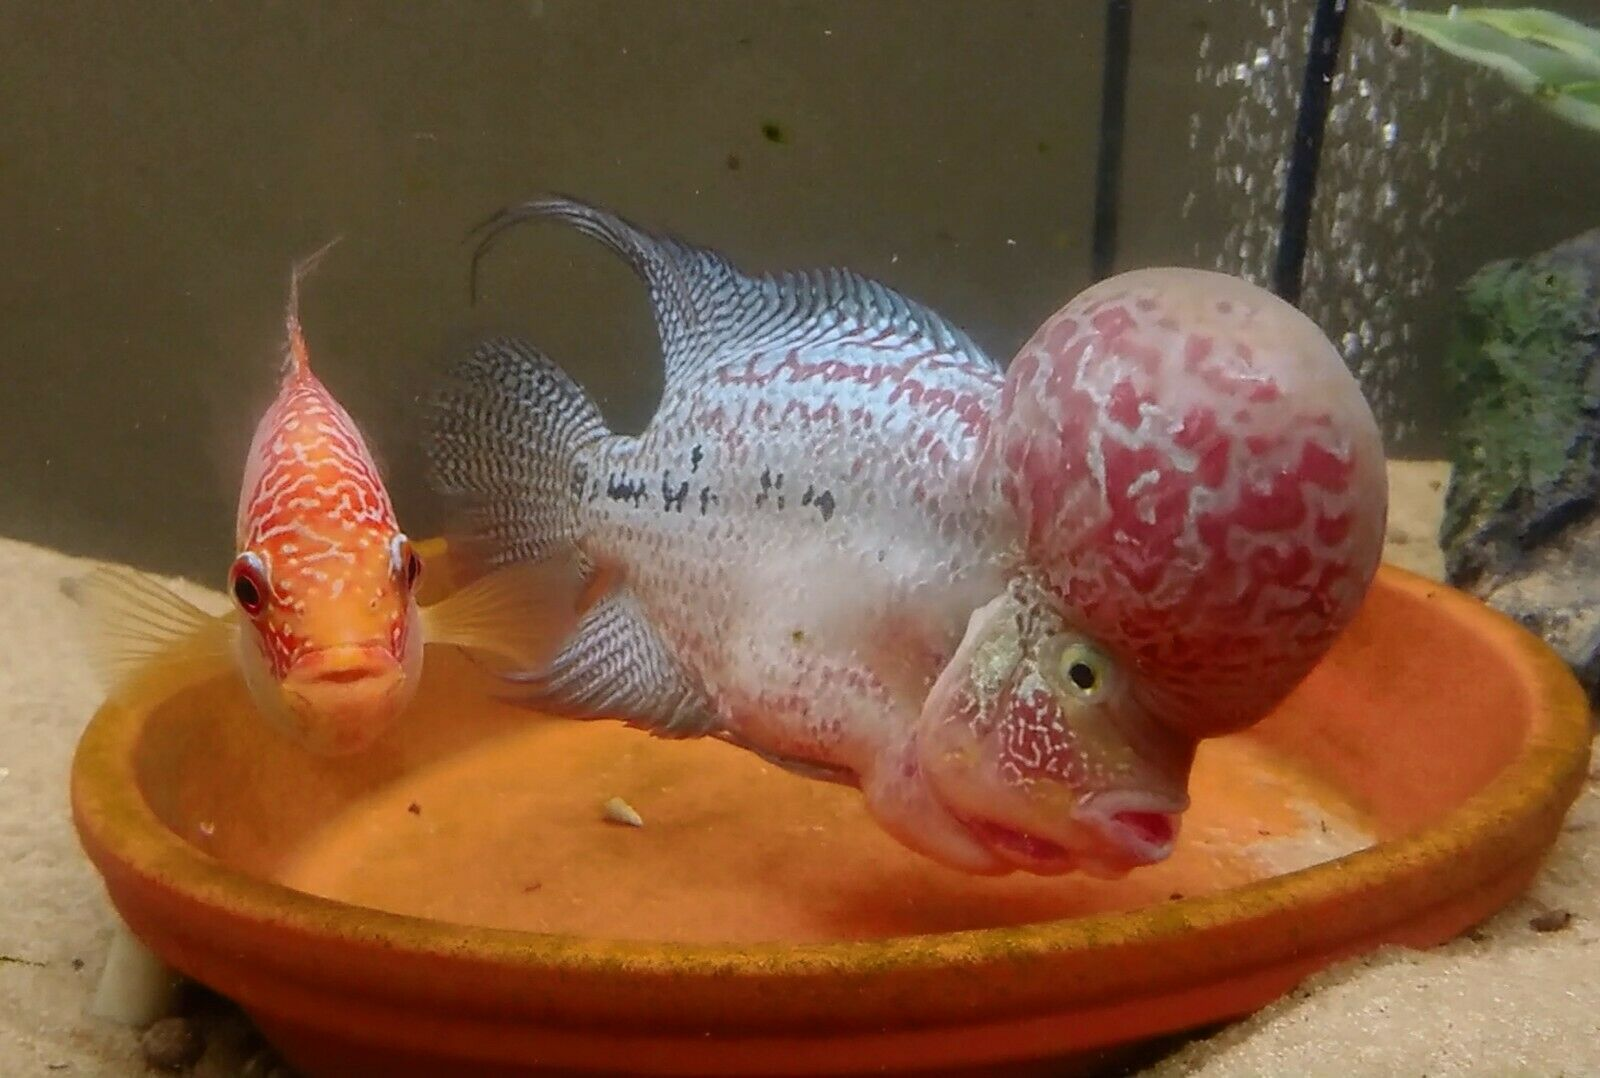 Flowerhorn pair (With images) Cichlid fish, Parrot fish